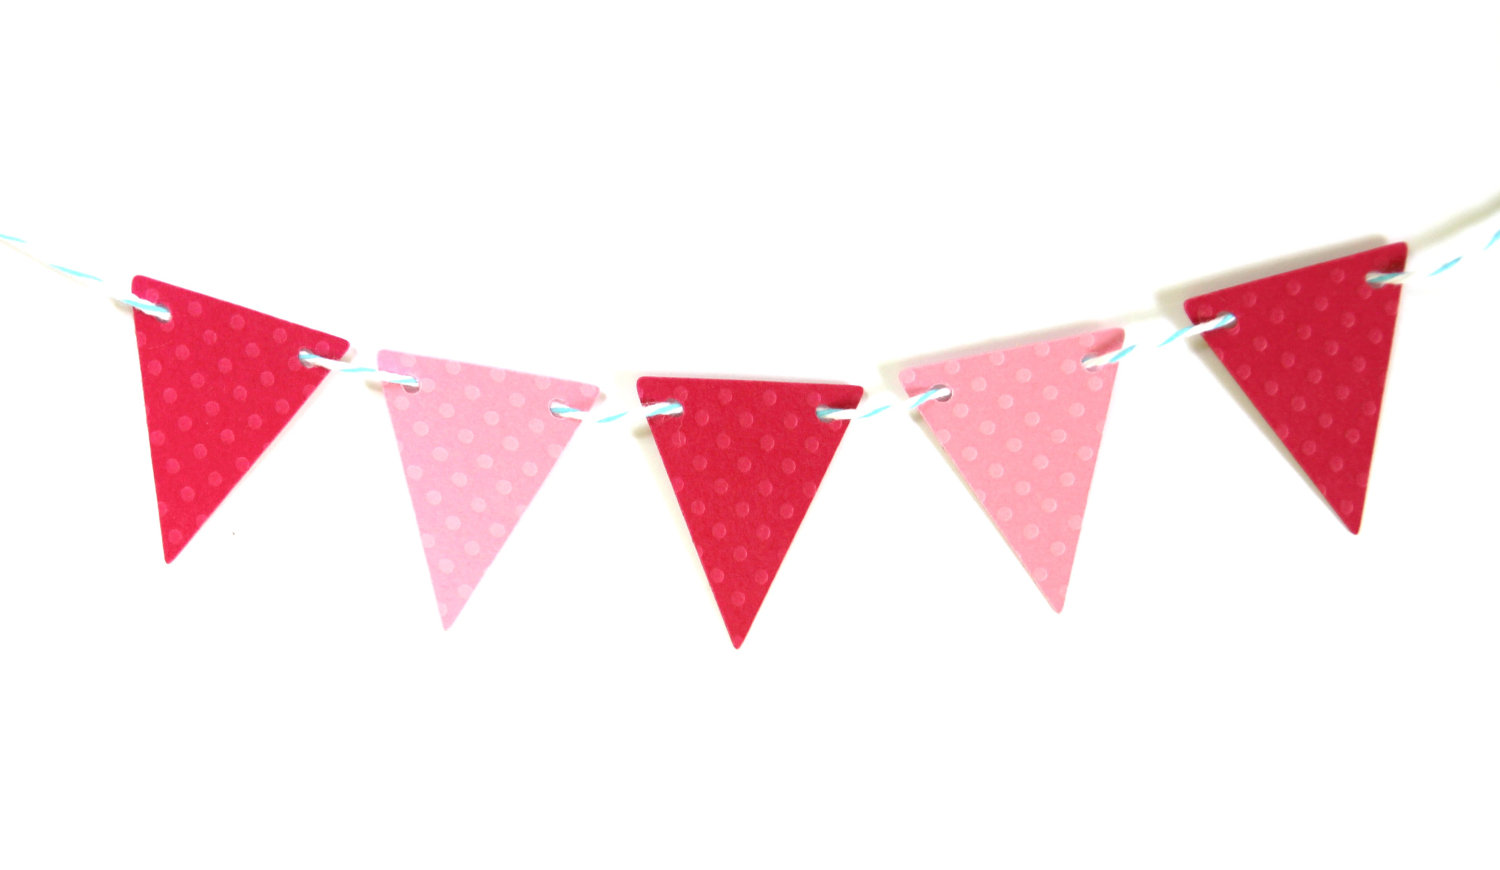 Triangle flag banner clipart free images 4 - PNG Triangle Flag